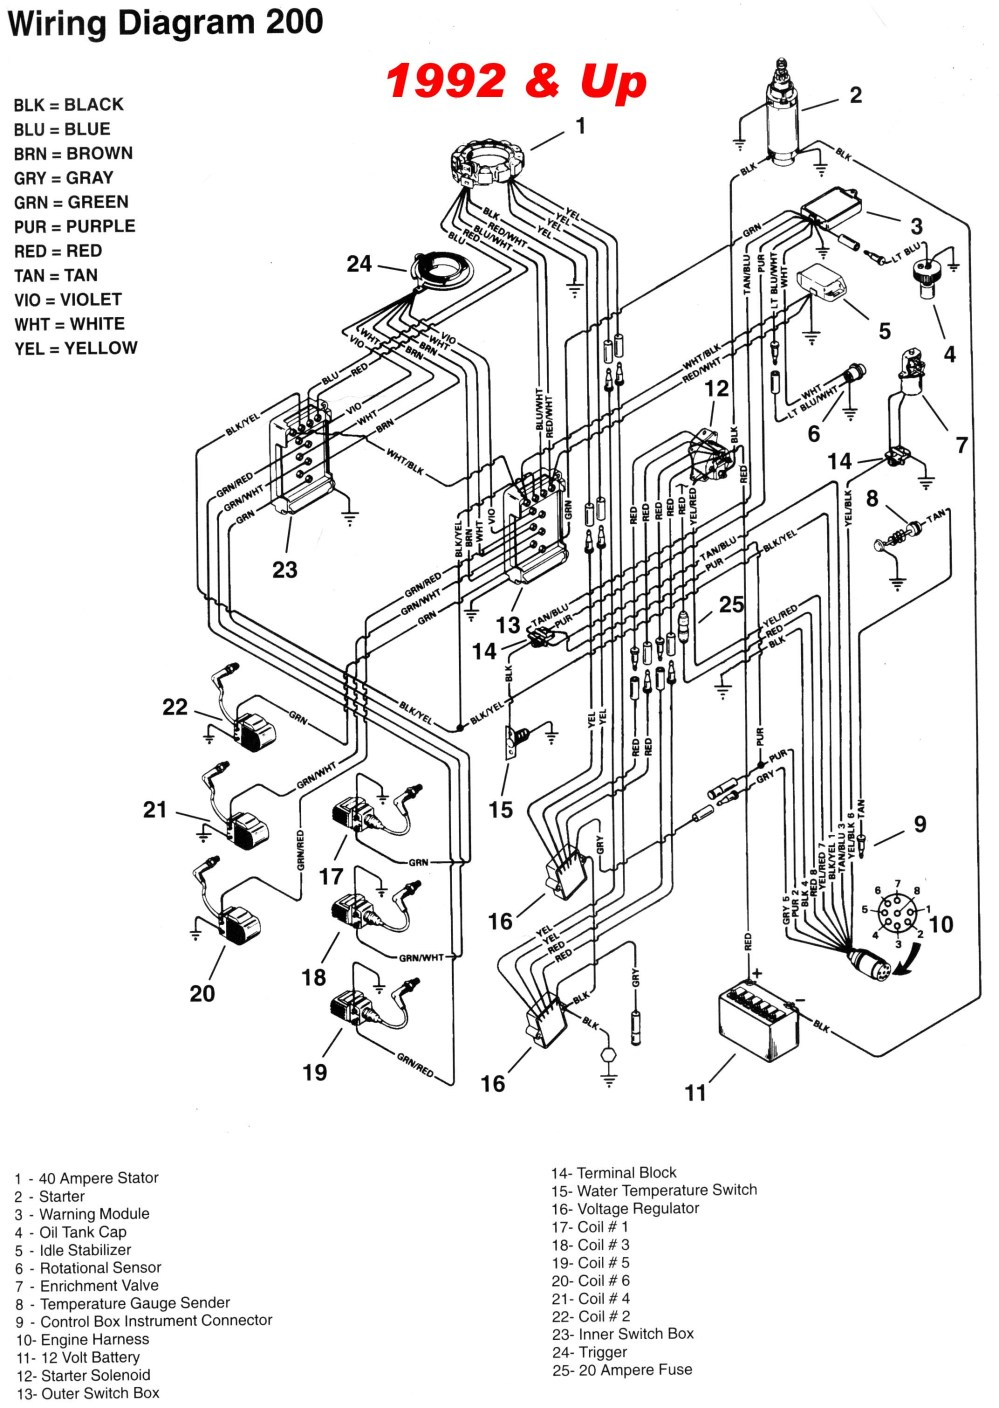 medium resolution of mercury 350 engine diagram wiring diagram portal 3 7 mercruiser engine diagram 8 2 mercruiser engine diagram